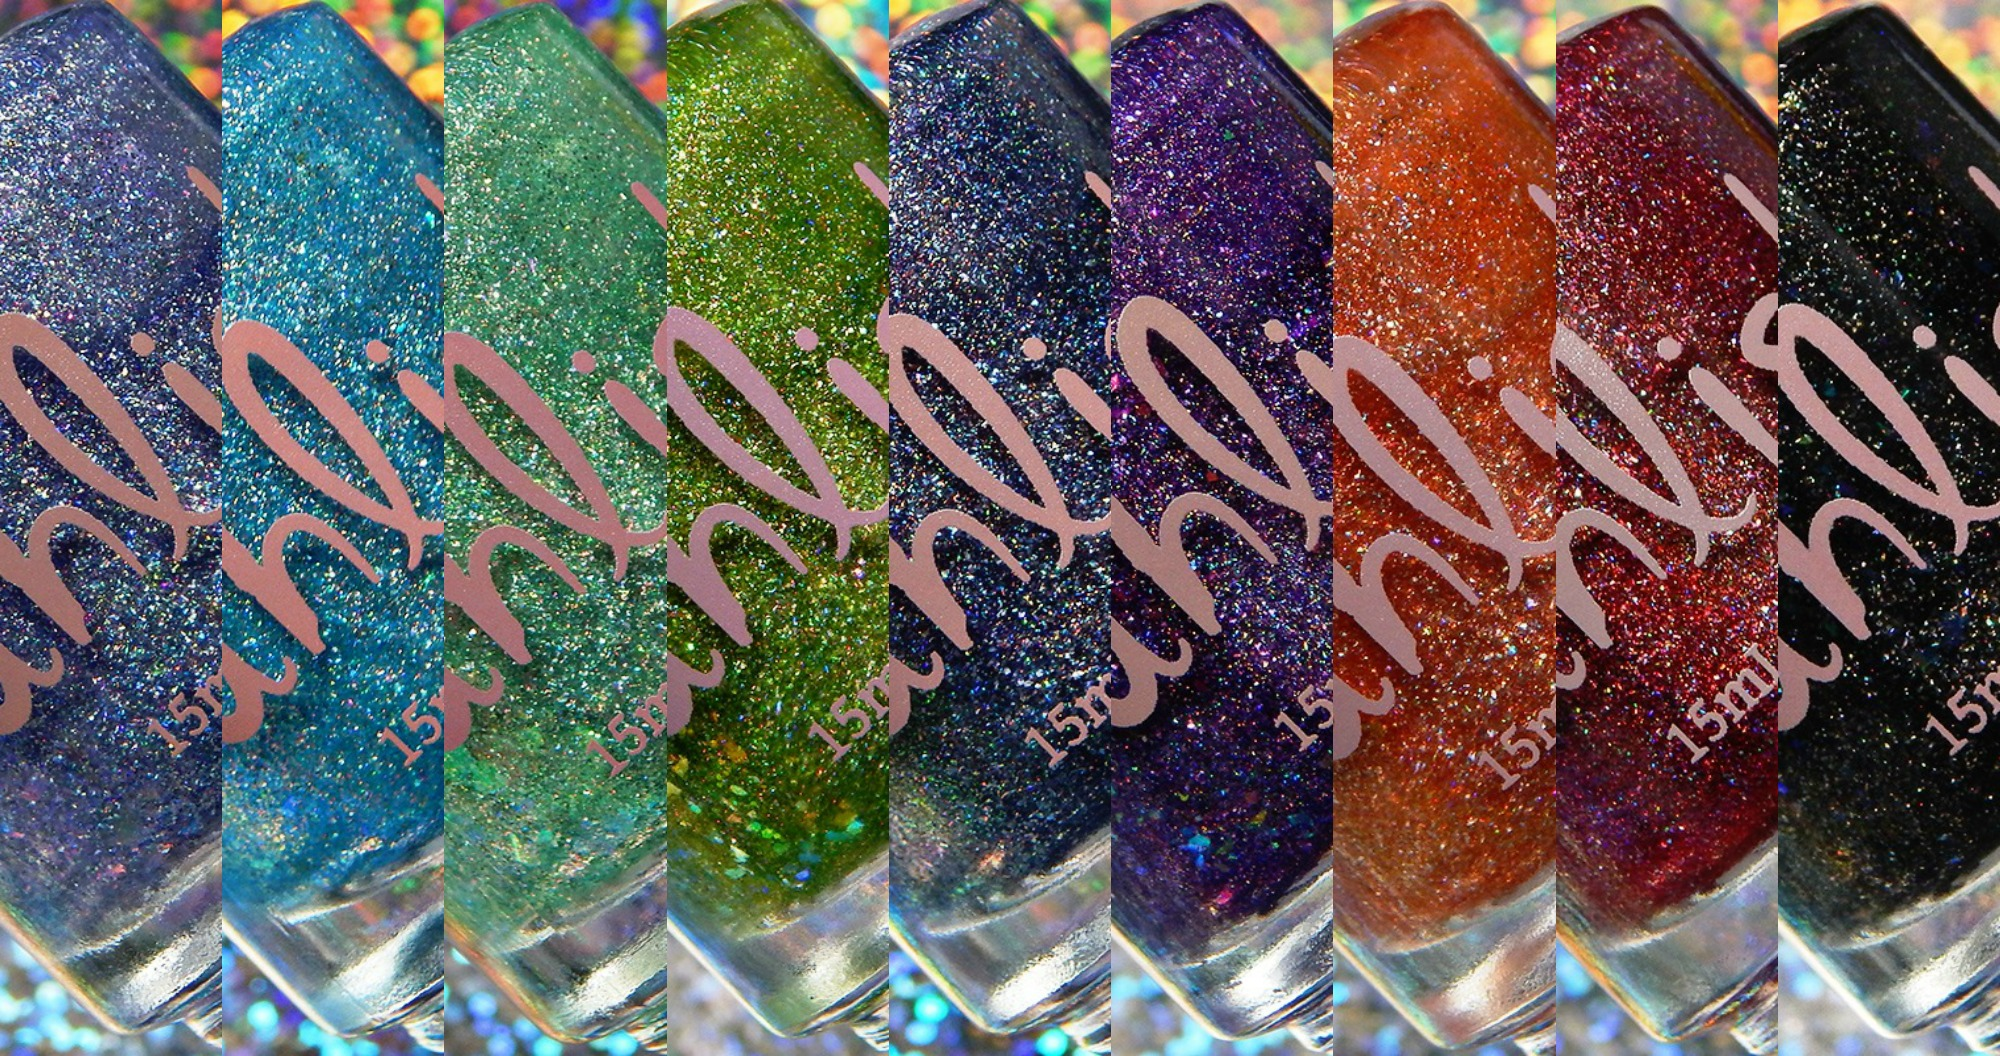 Pahlish Holo-Ween Remix Trio & All Holos Eve Collection